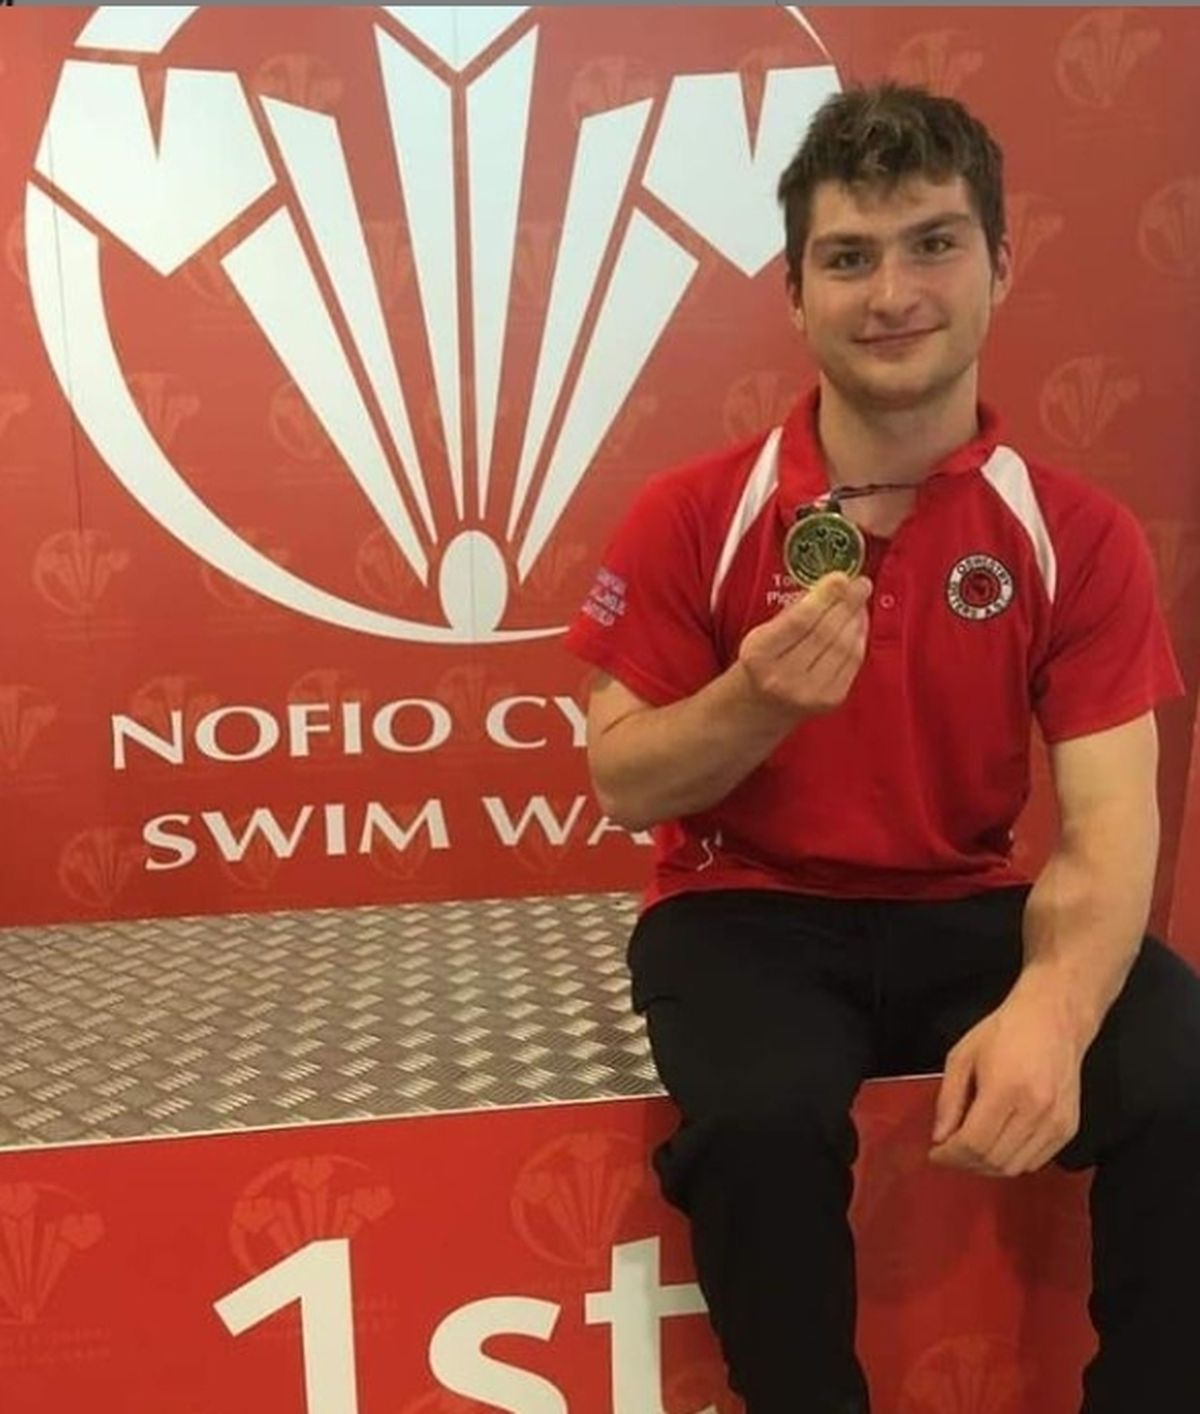 Piggott after winning gold at the Welsh National Championships in 2019. Photo: Instagram